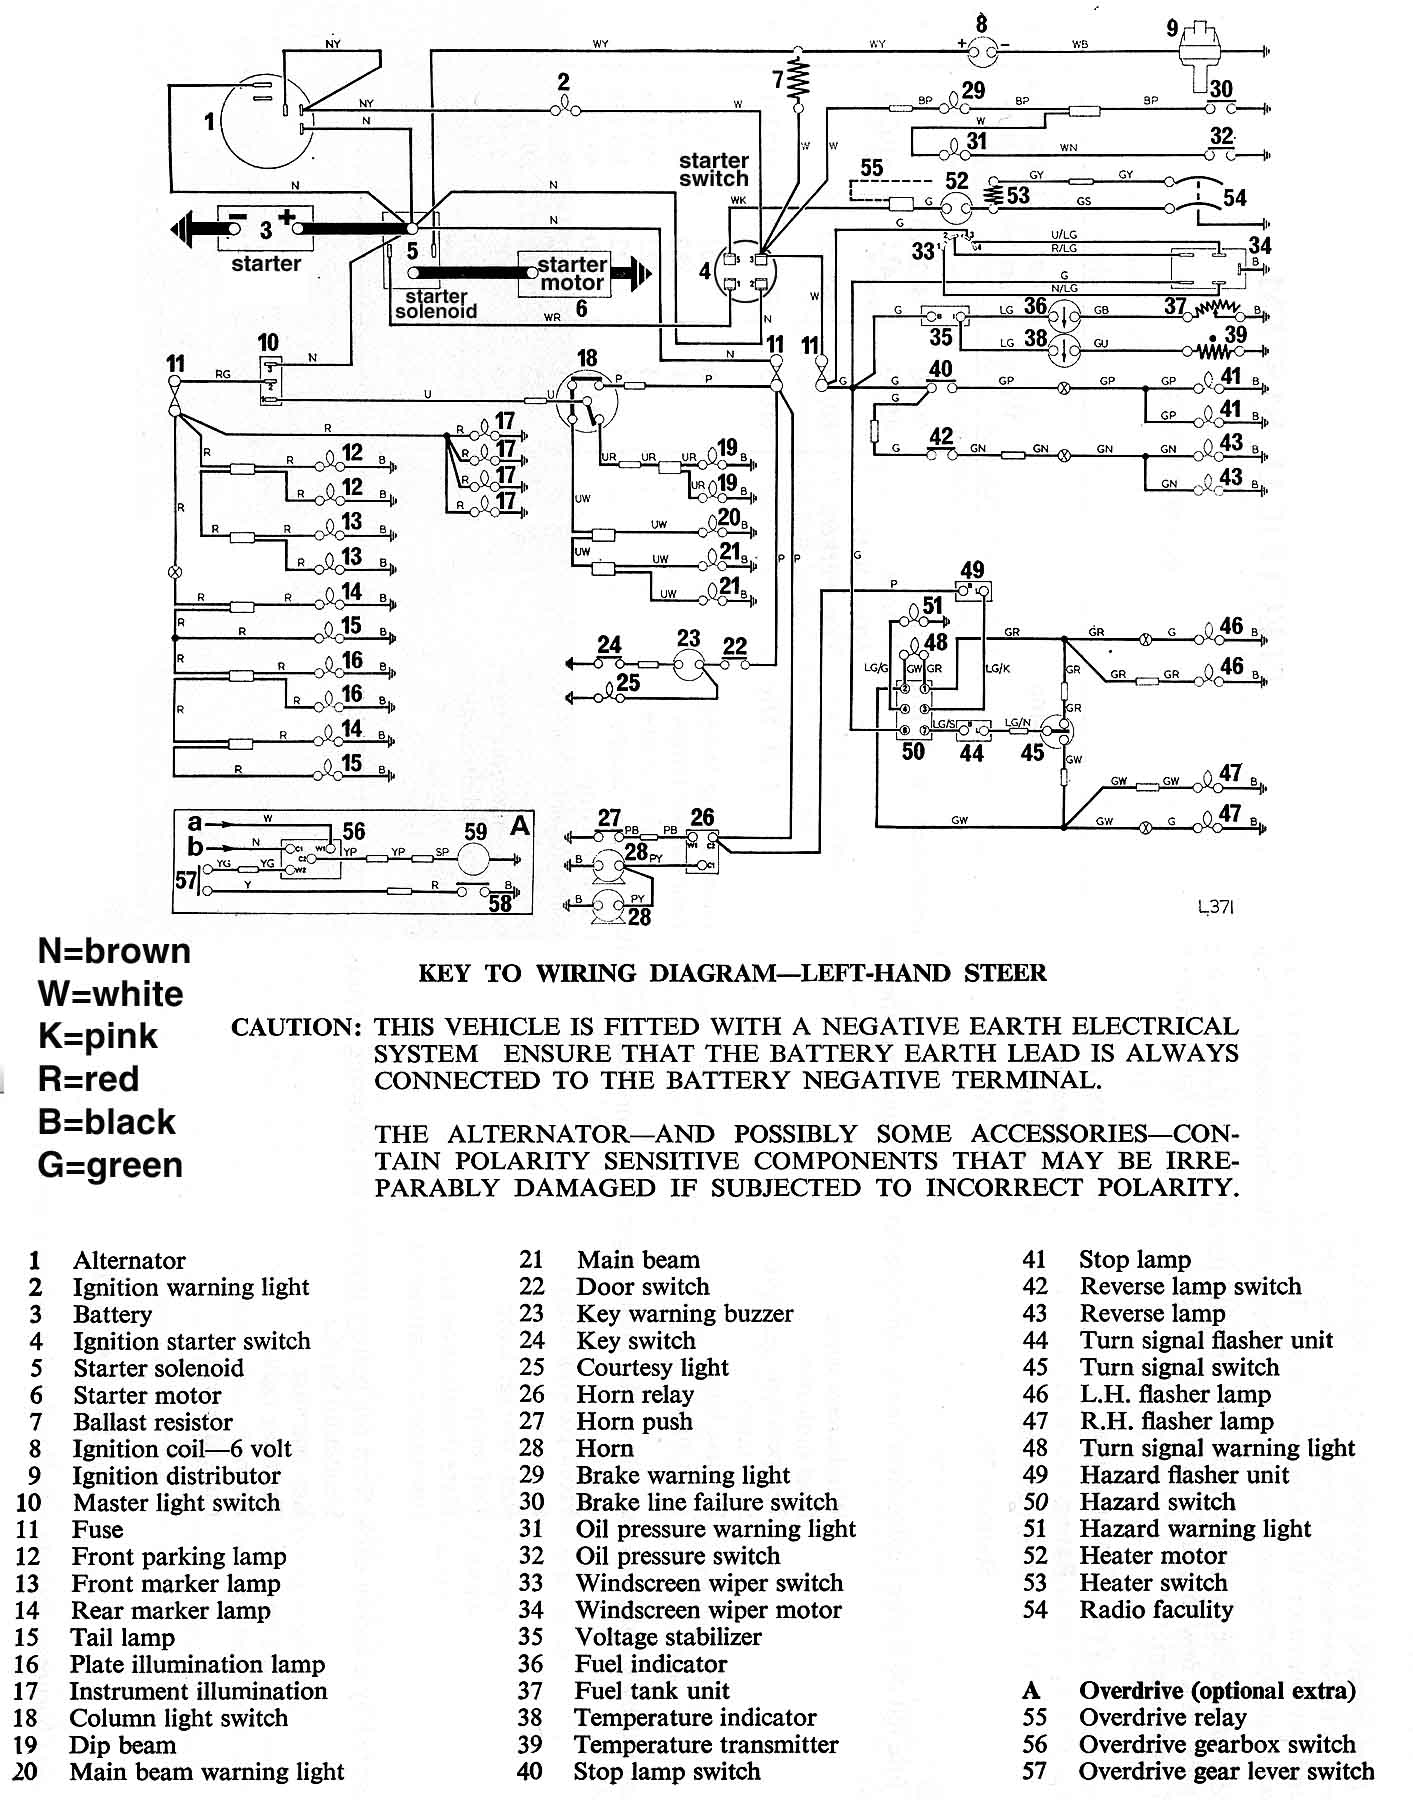 1979 Mgb Electrical Wiring Schematics Diagrams 1978 Fan Relay Diagram 74 Spitfire Detailed Rh Developerpodcast Co 1977 Fuse Box Engine Bay